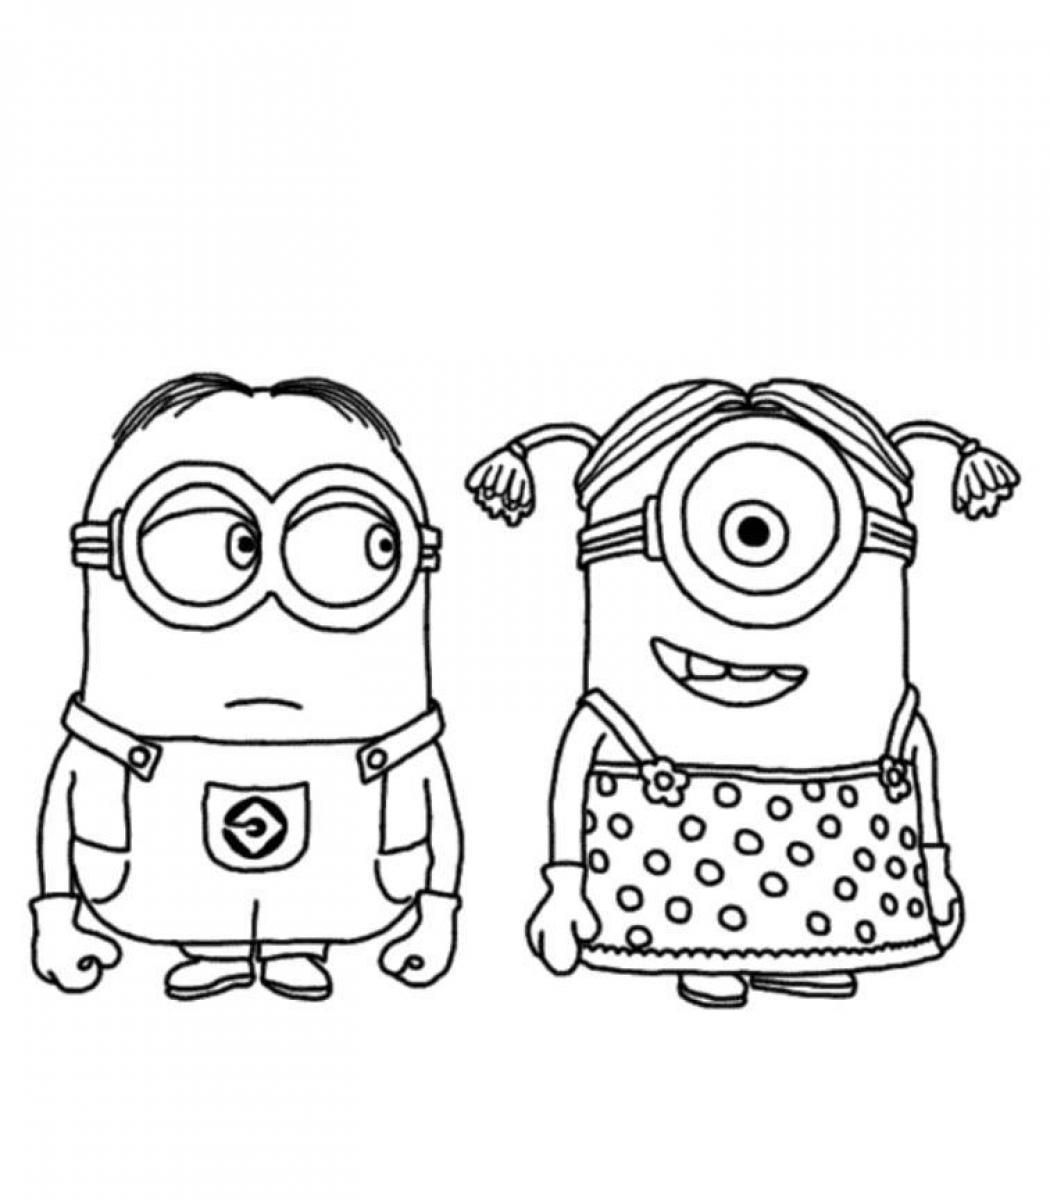 minion coloring pages printable minion coloring pages free minion coloring pages online minion